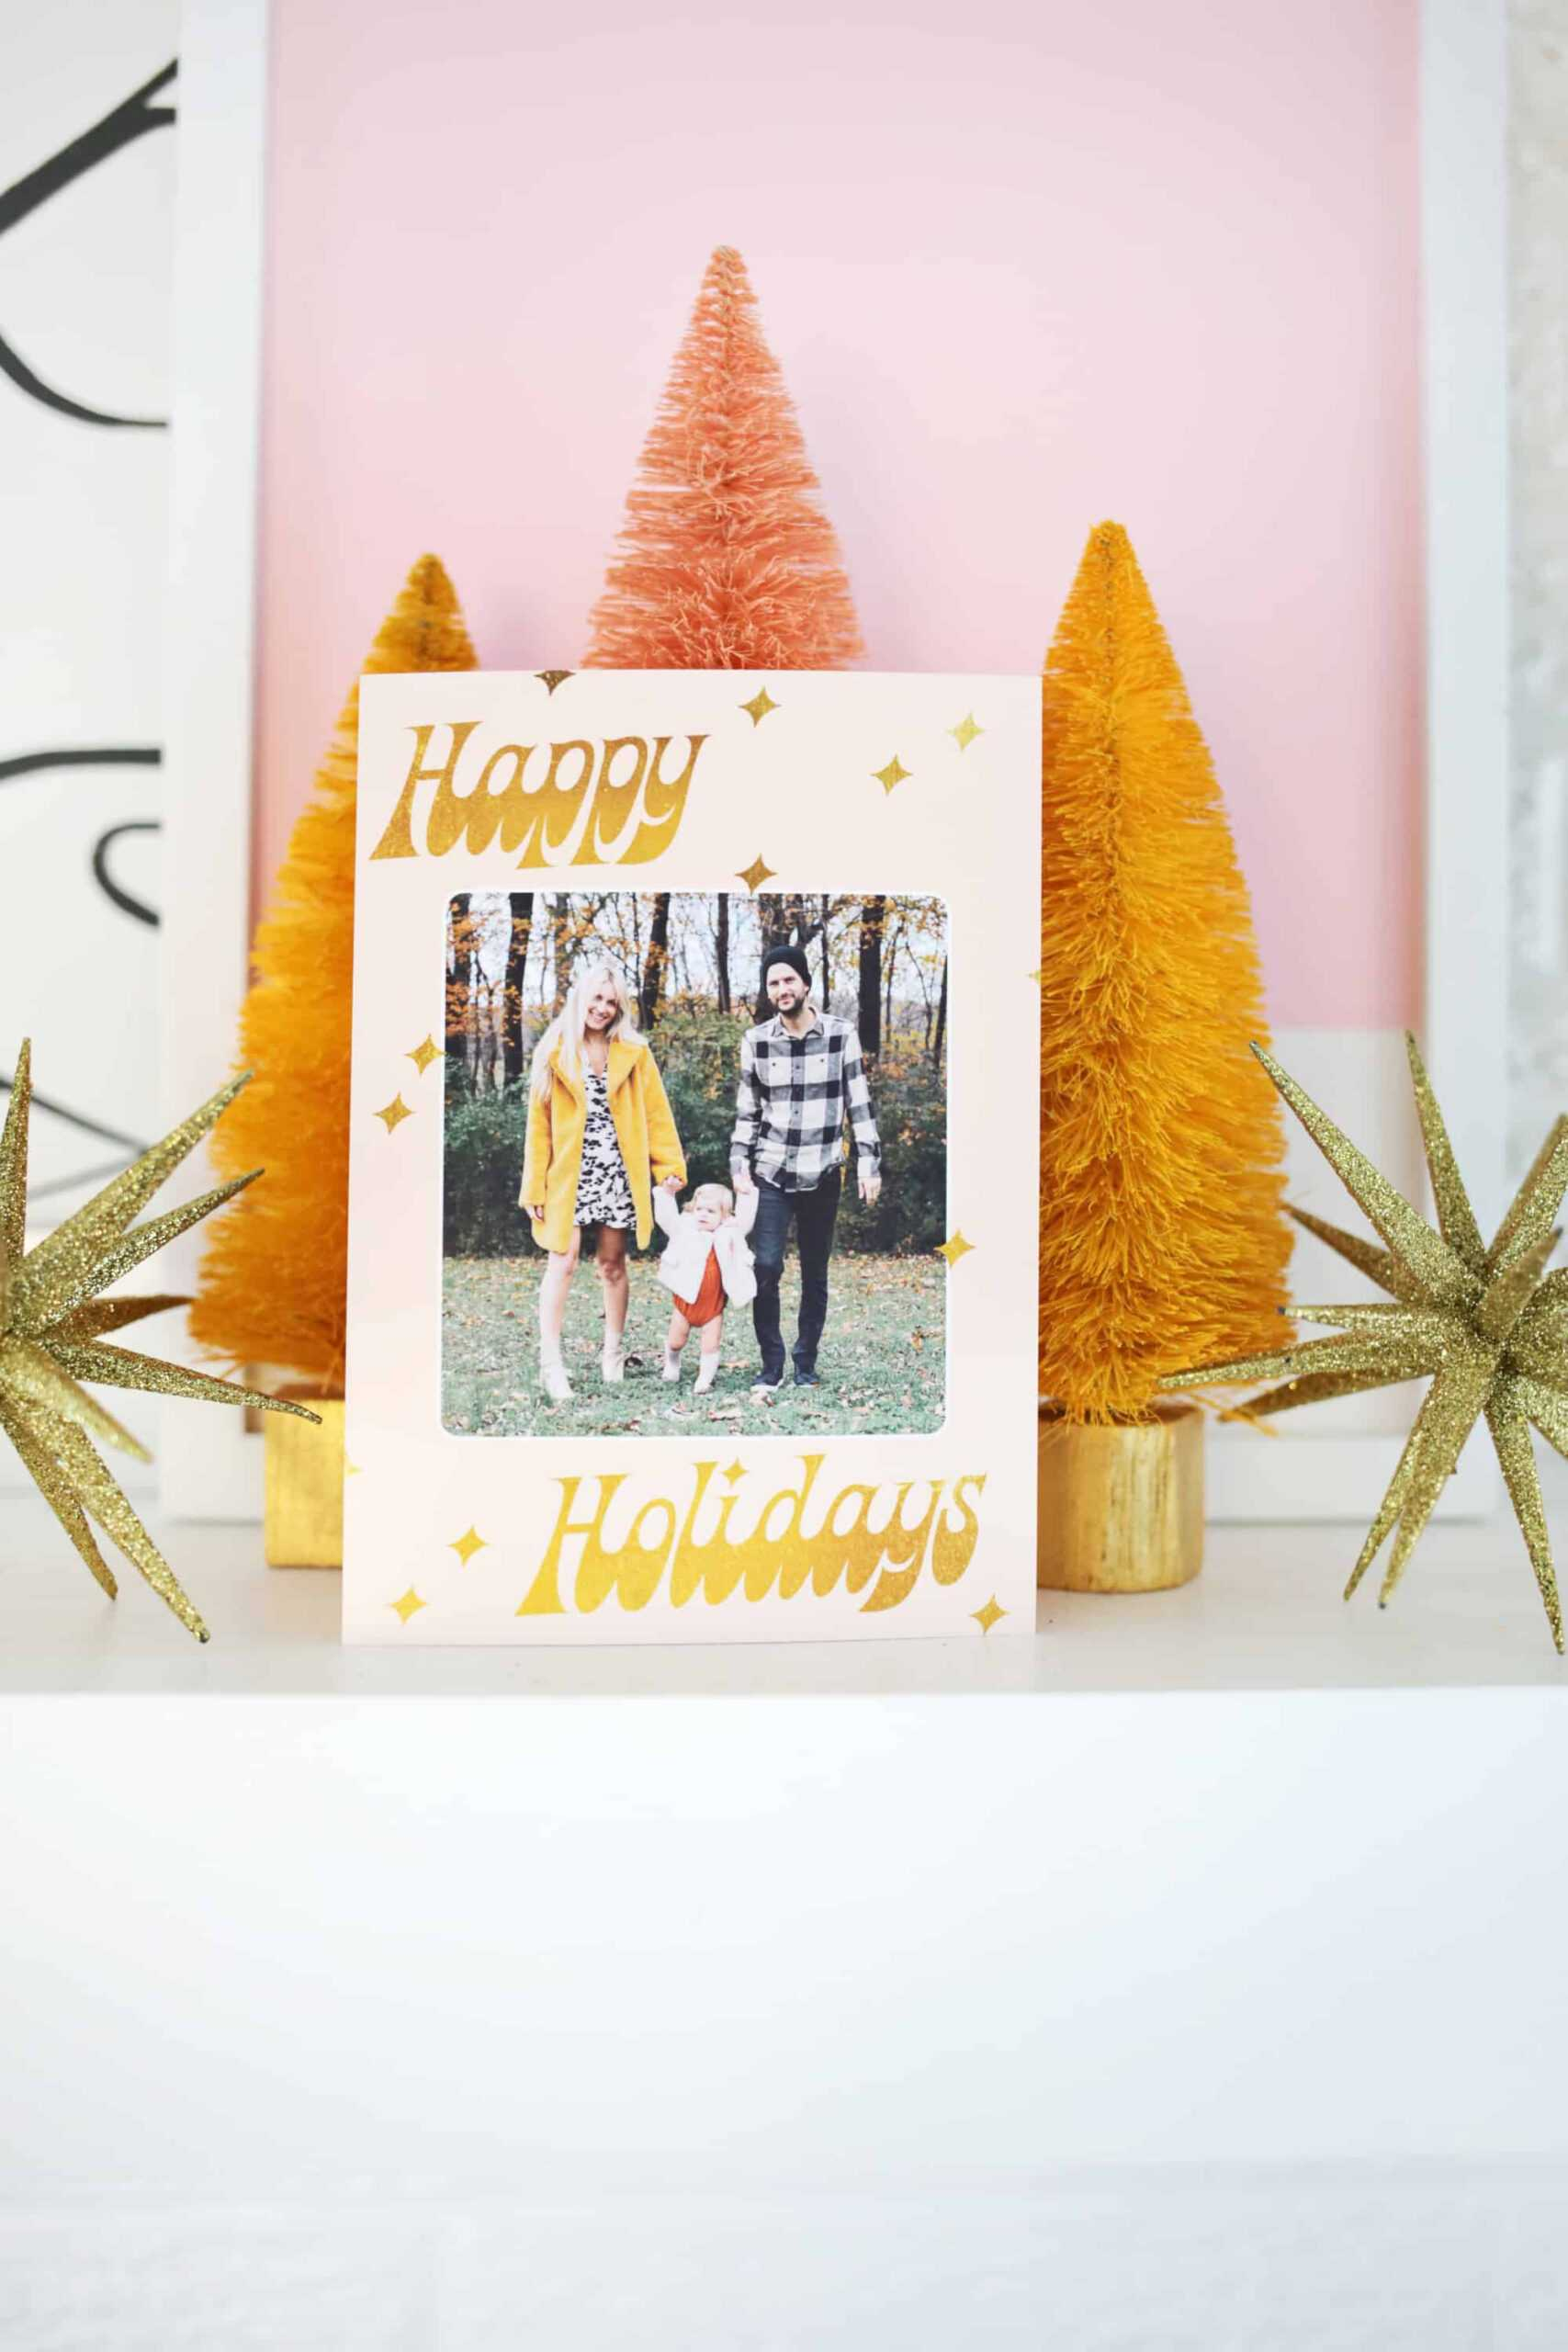 Print Your Own Holiday Cards (Free Template Included!) - A with regard to Print Your Own Christmas Cards Templates